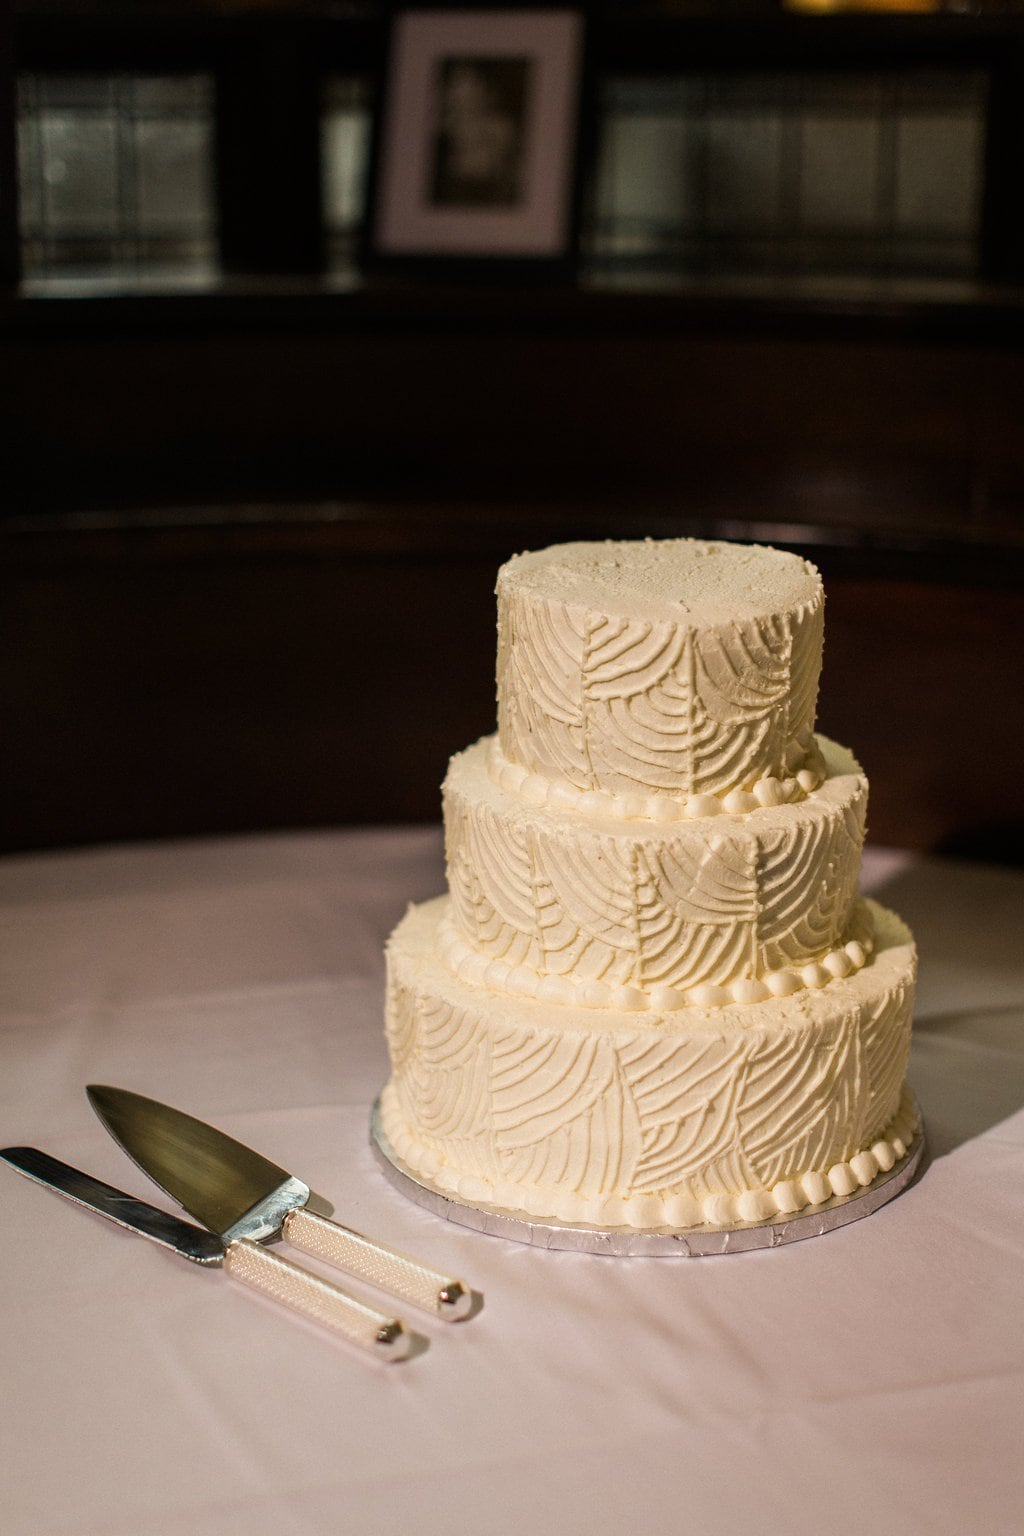 Simple white wedding cake from Gluuteny Bakery - 1920's inspired wedding Grand Concourse